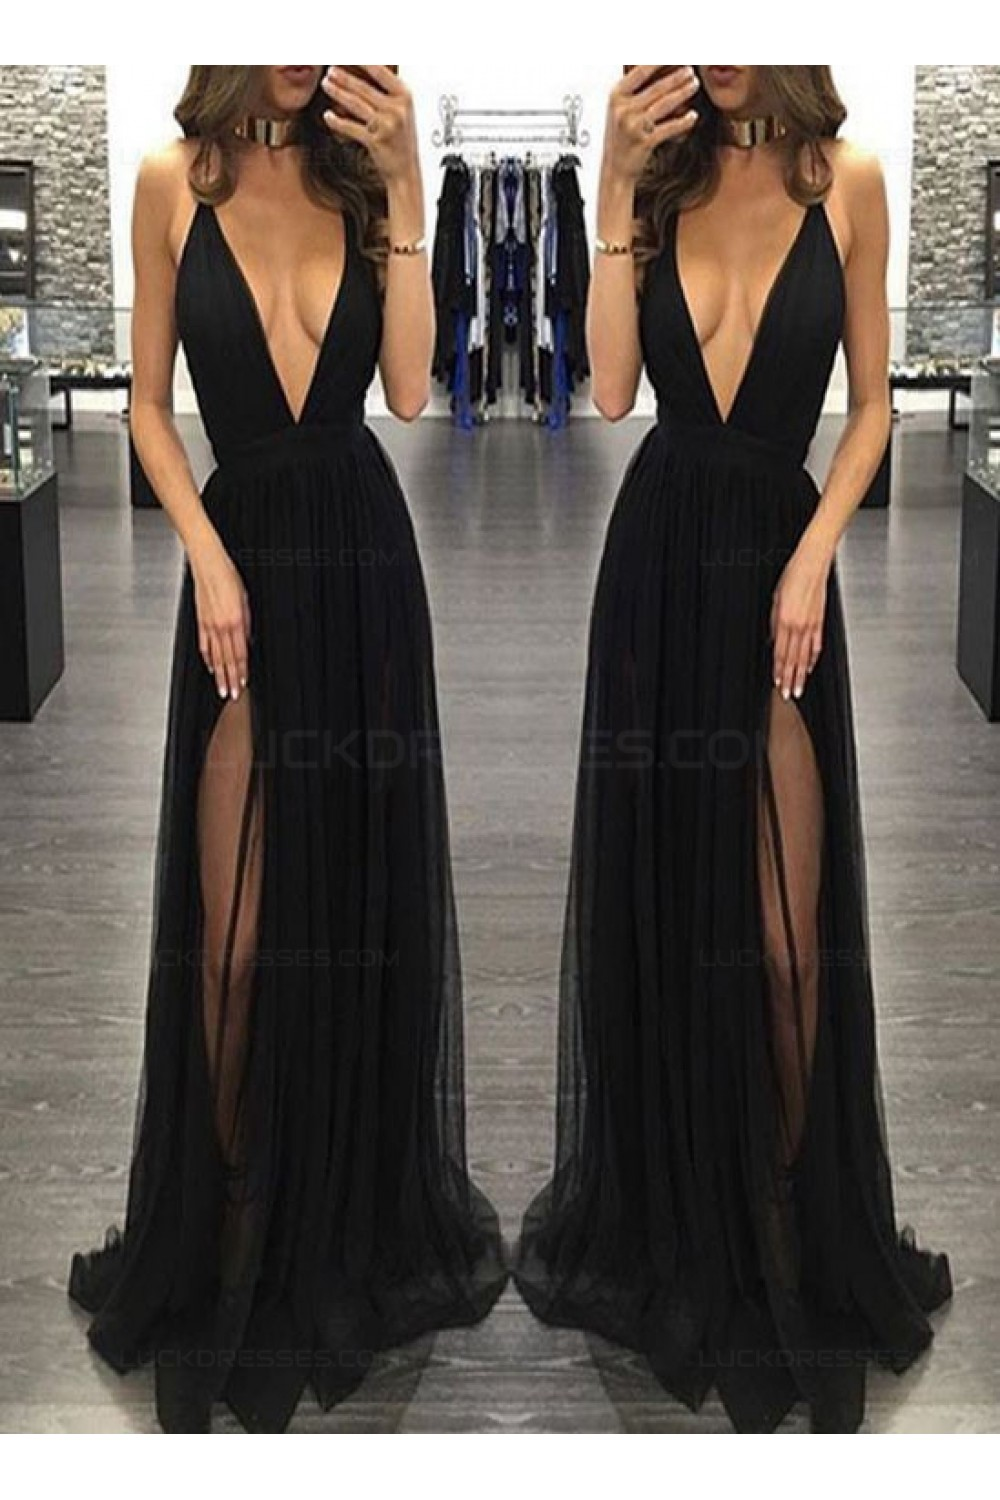 ab9ab538bd9 Sexy Low V-Neck Long Black Prom Dresses Party Evening Gowns ...